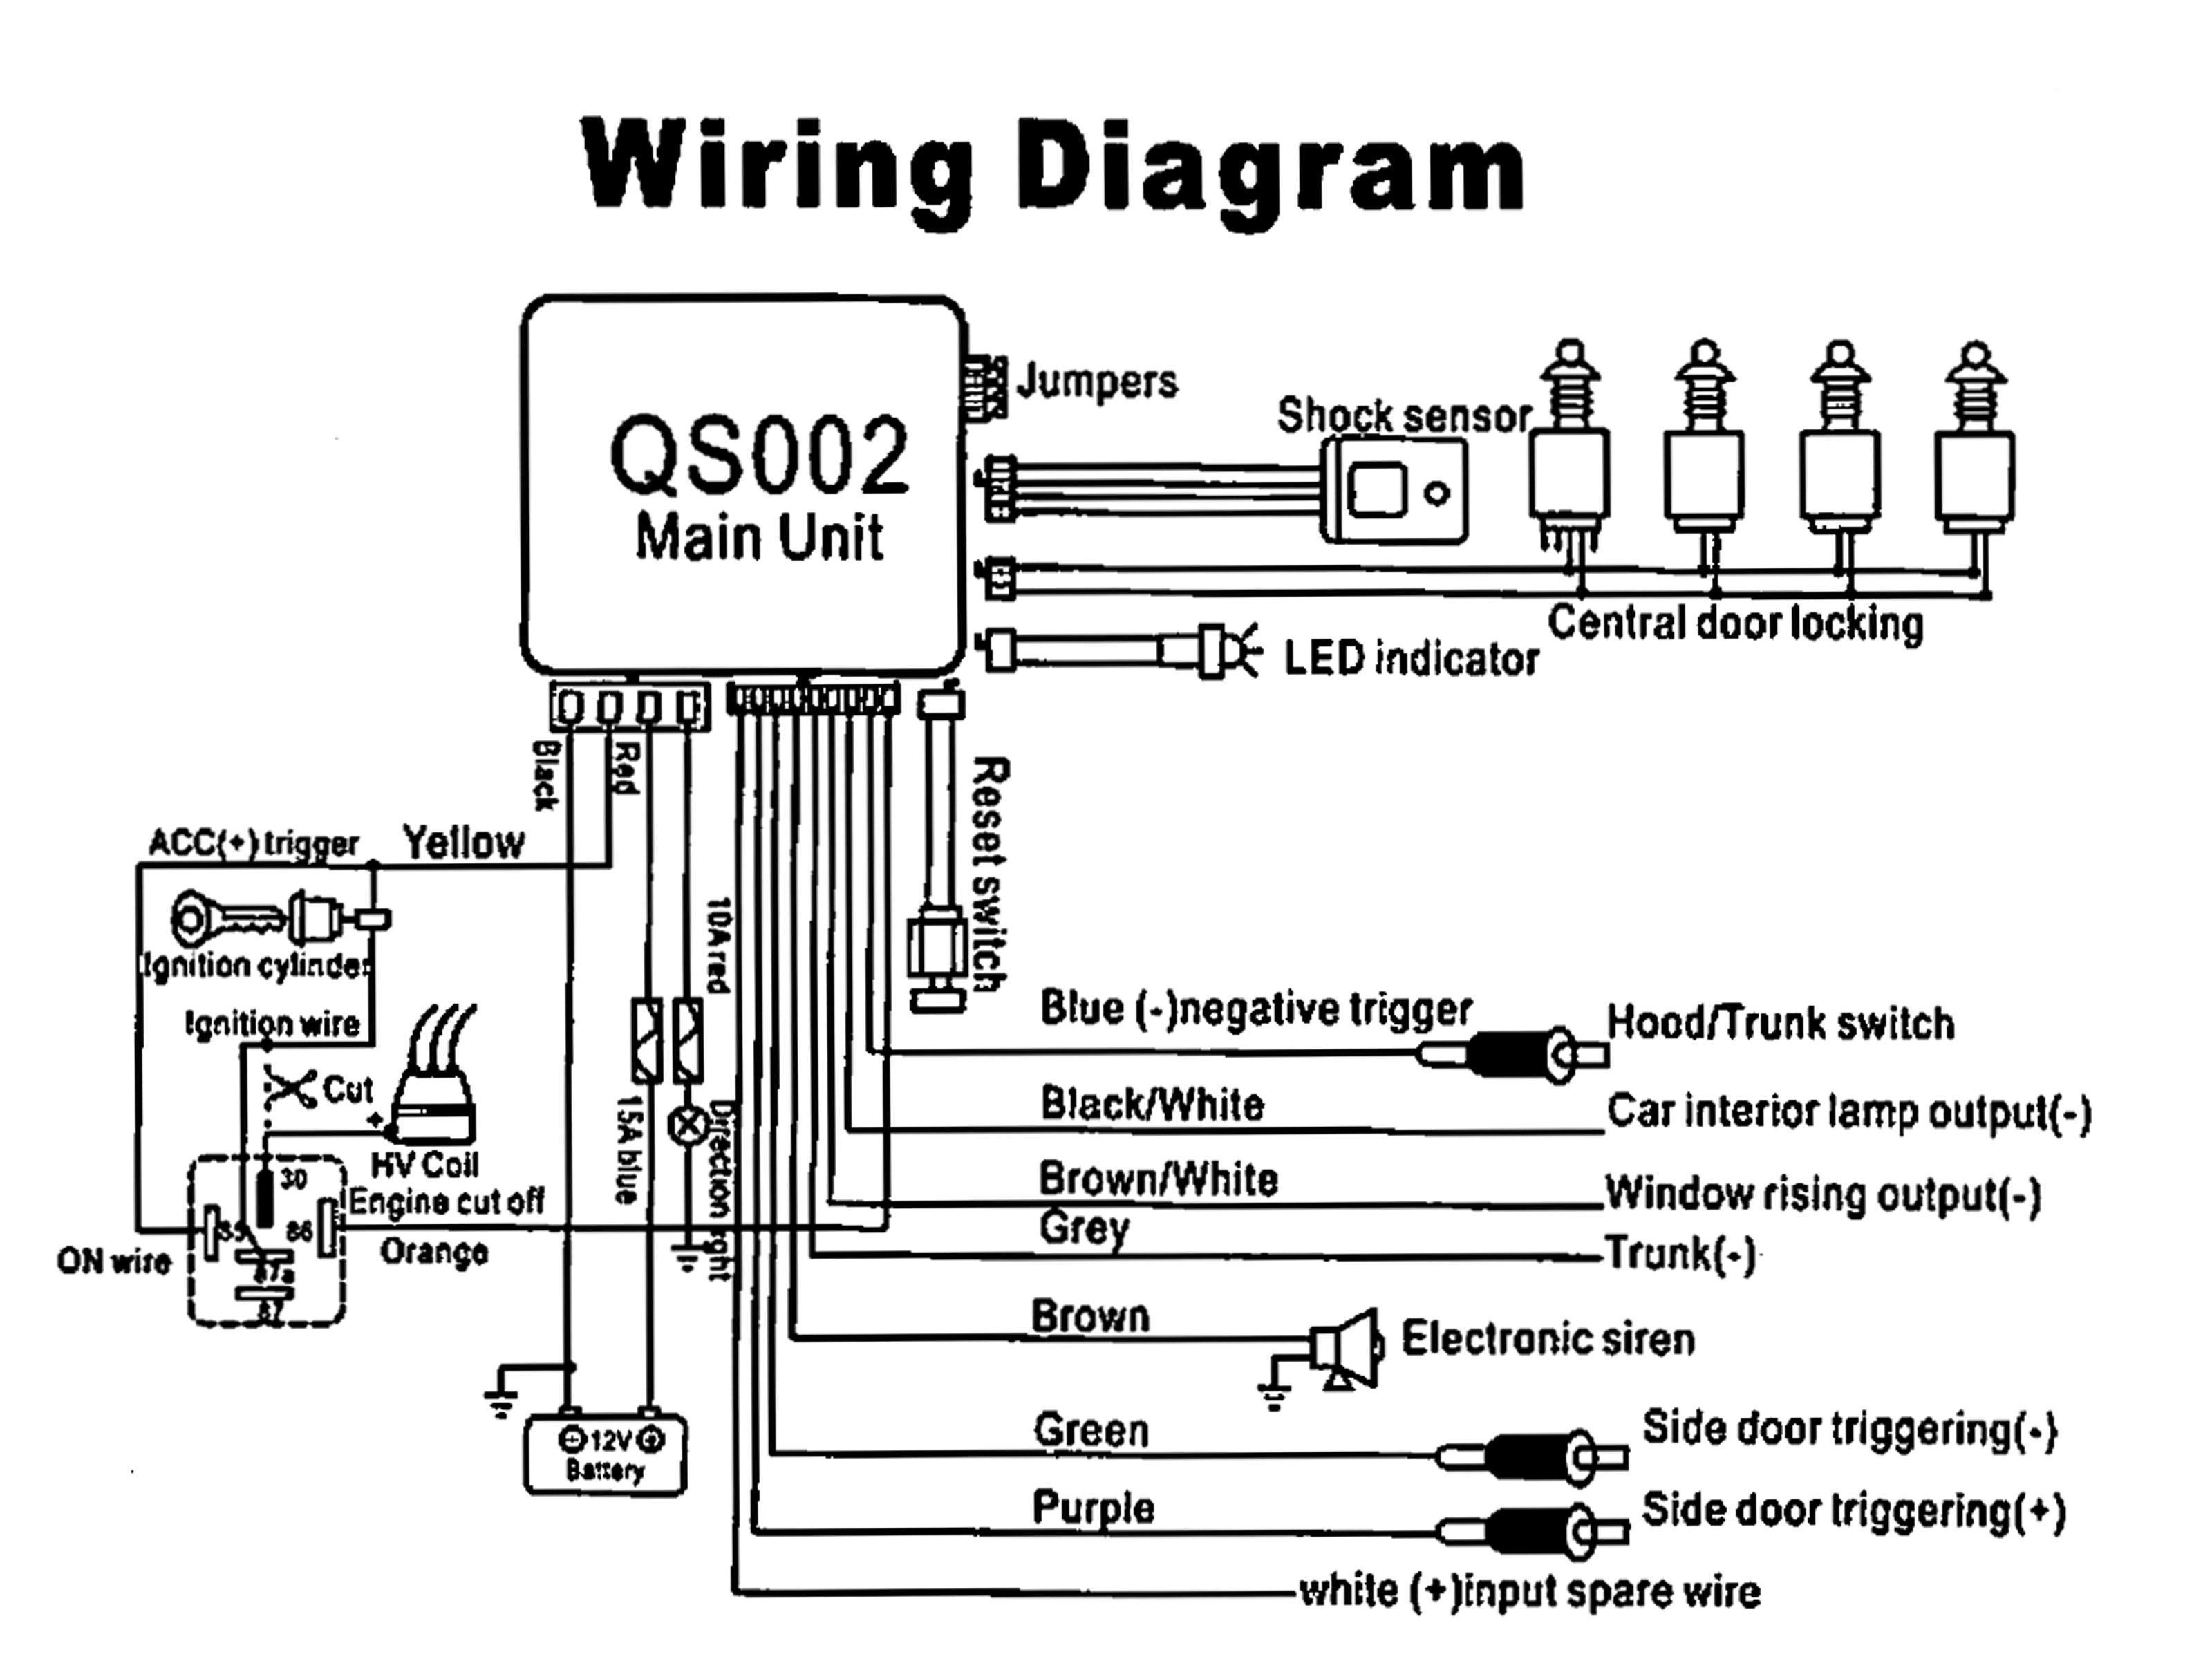 DIAGRAM] Viper Car Alarm Wiring Diagram FULL Version HD Quality Wiring  Diagram - DWIRINGDIAGRAM.CONSTRUCTION-CARACAS.FRdwiringdiagram.construction-caracas.fr